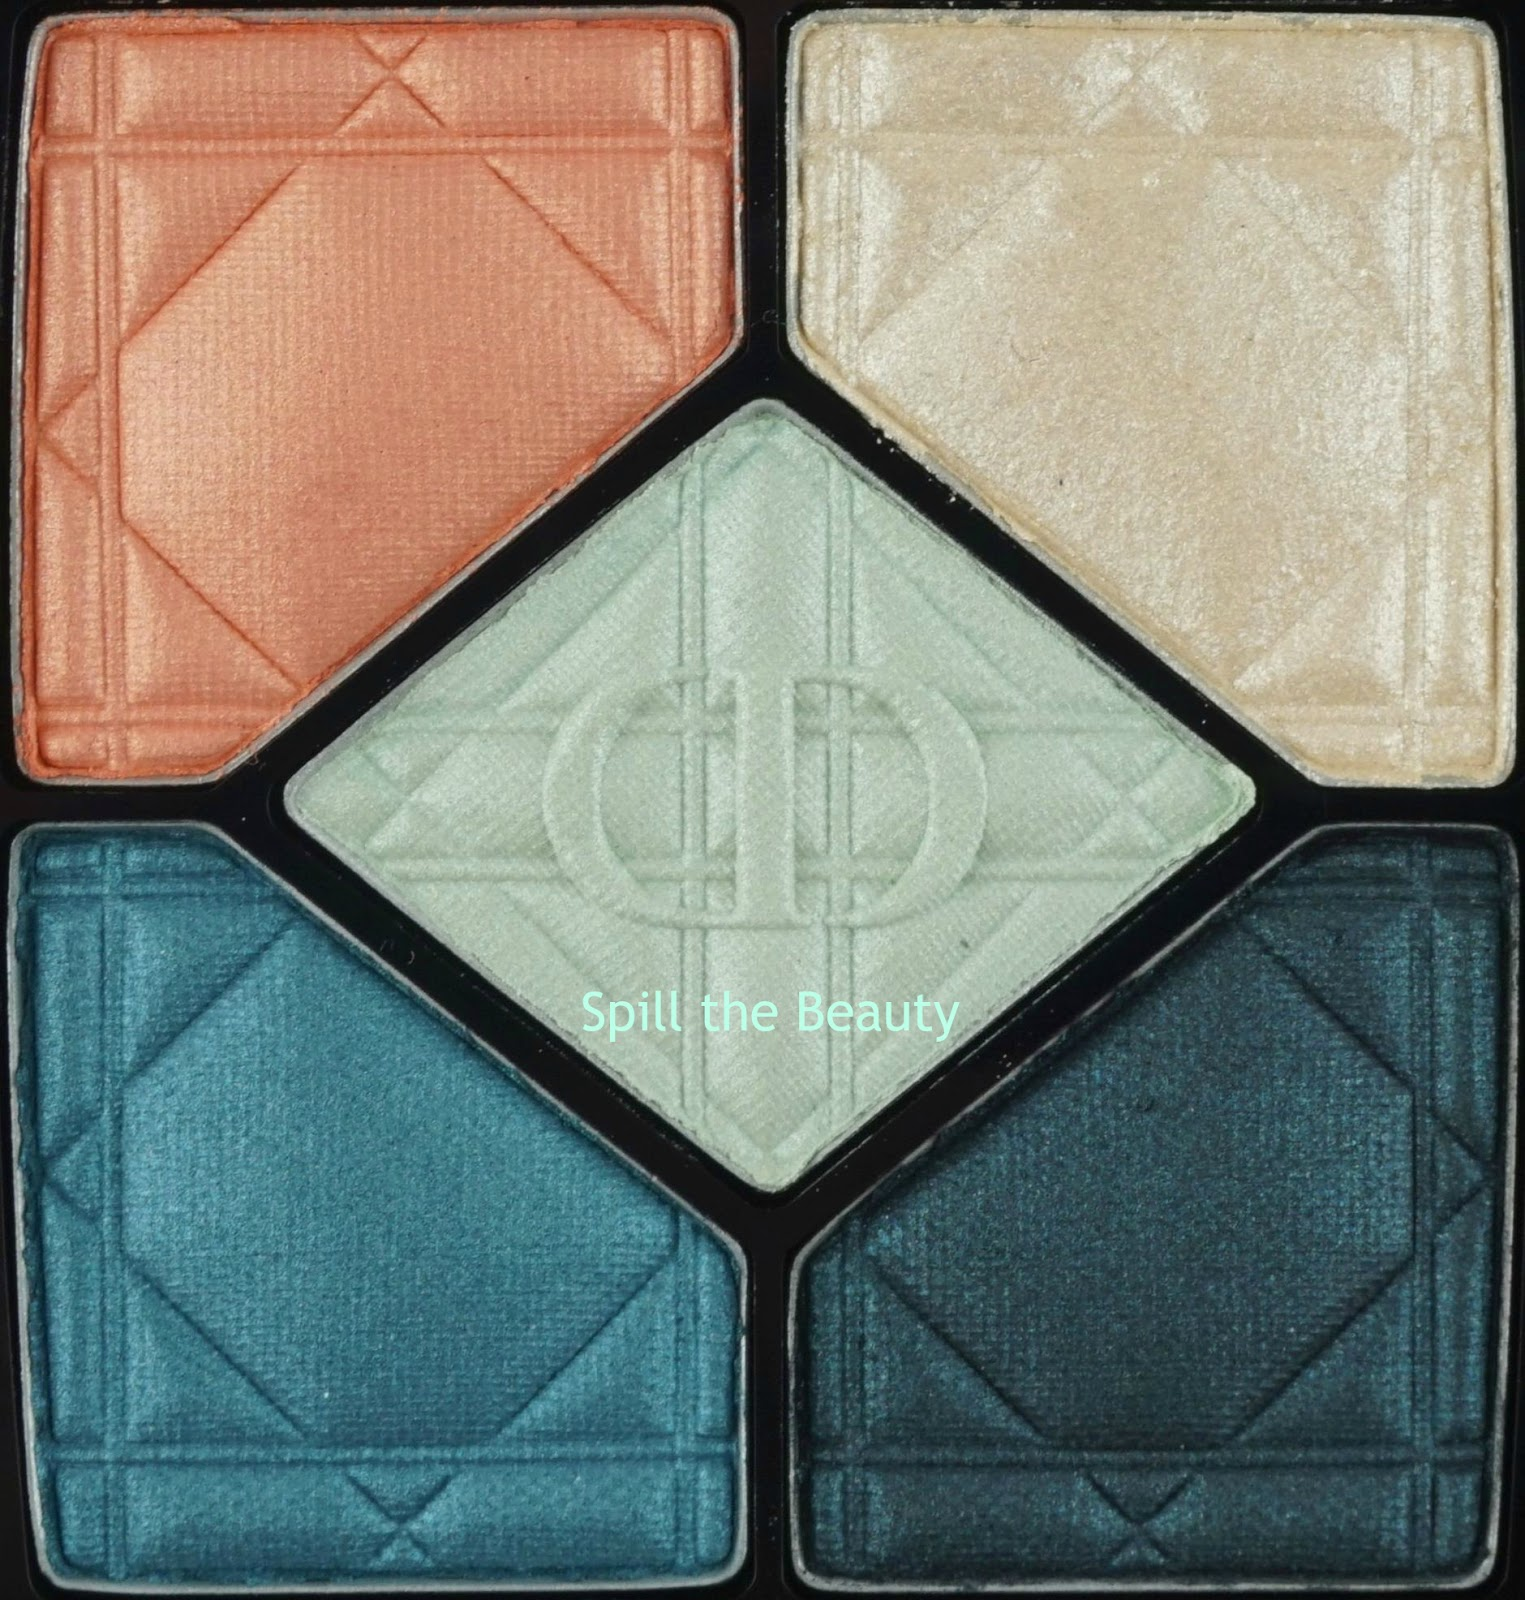 Dior 5 Couleurs Eyeshadow Palette 'Electrify'